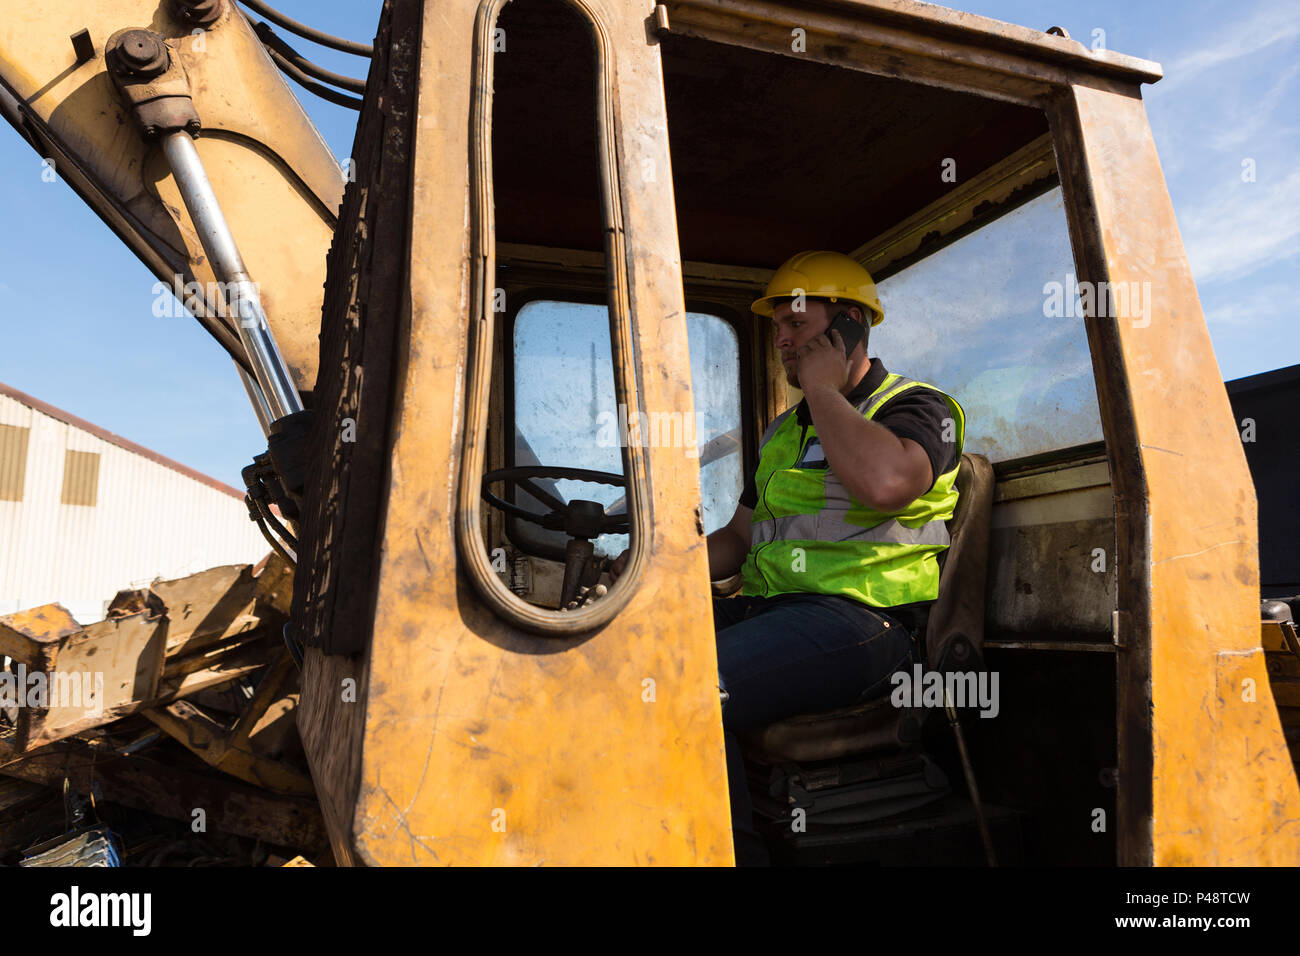 Worker talking on the phone while operating the crane - Stock Image